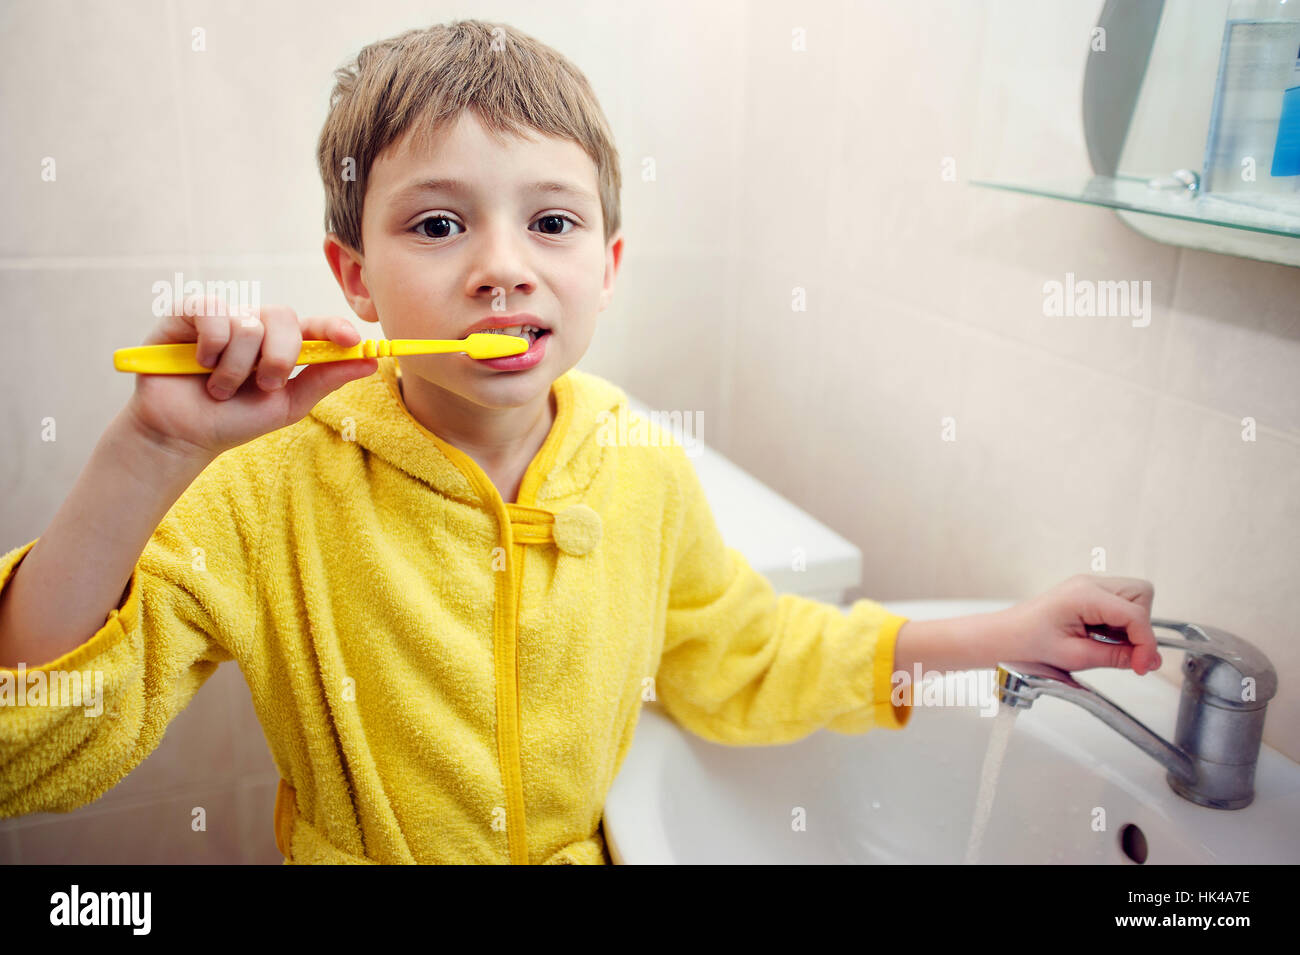 Personal hygiene. Care of an oral cavity. The boy brushes teeth. Stock Photo